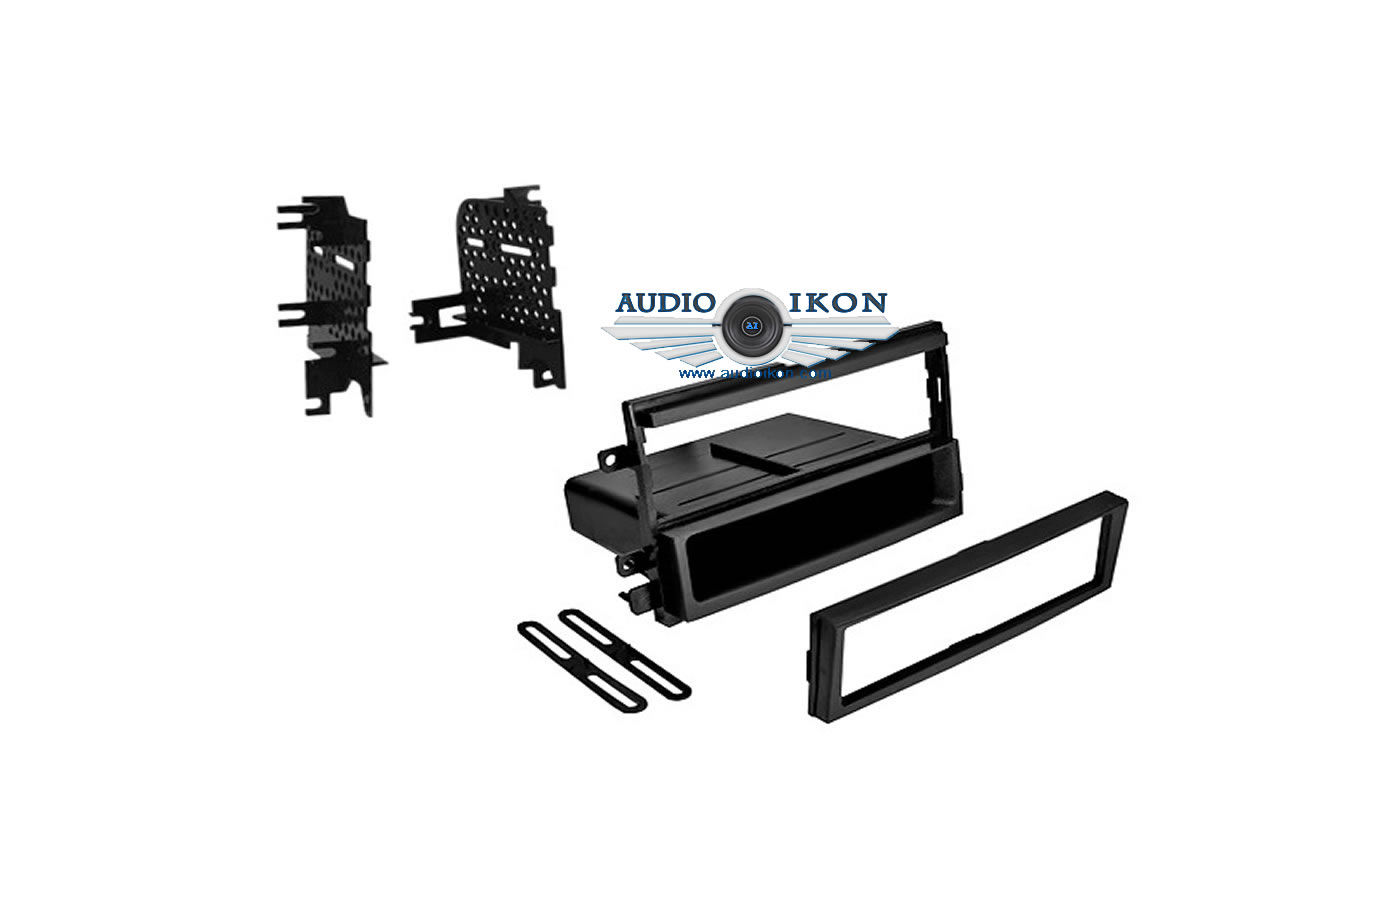 audioikon com car audio  amplifiers  speakers  car subwoofers